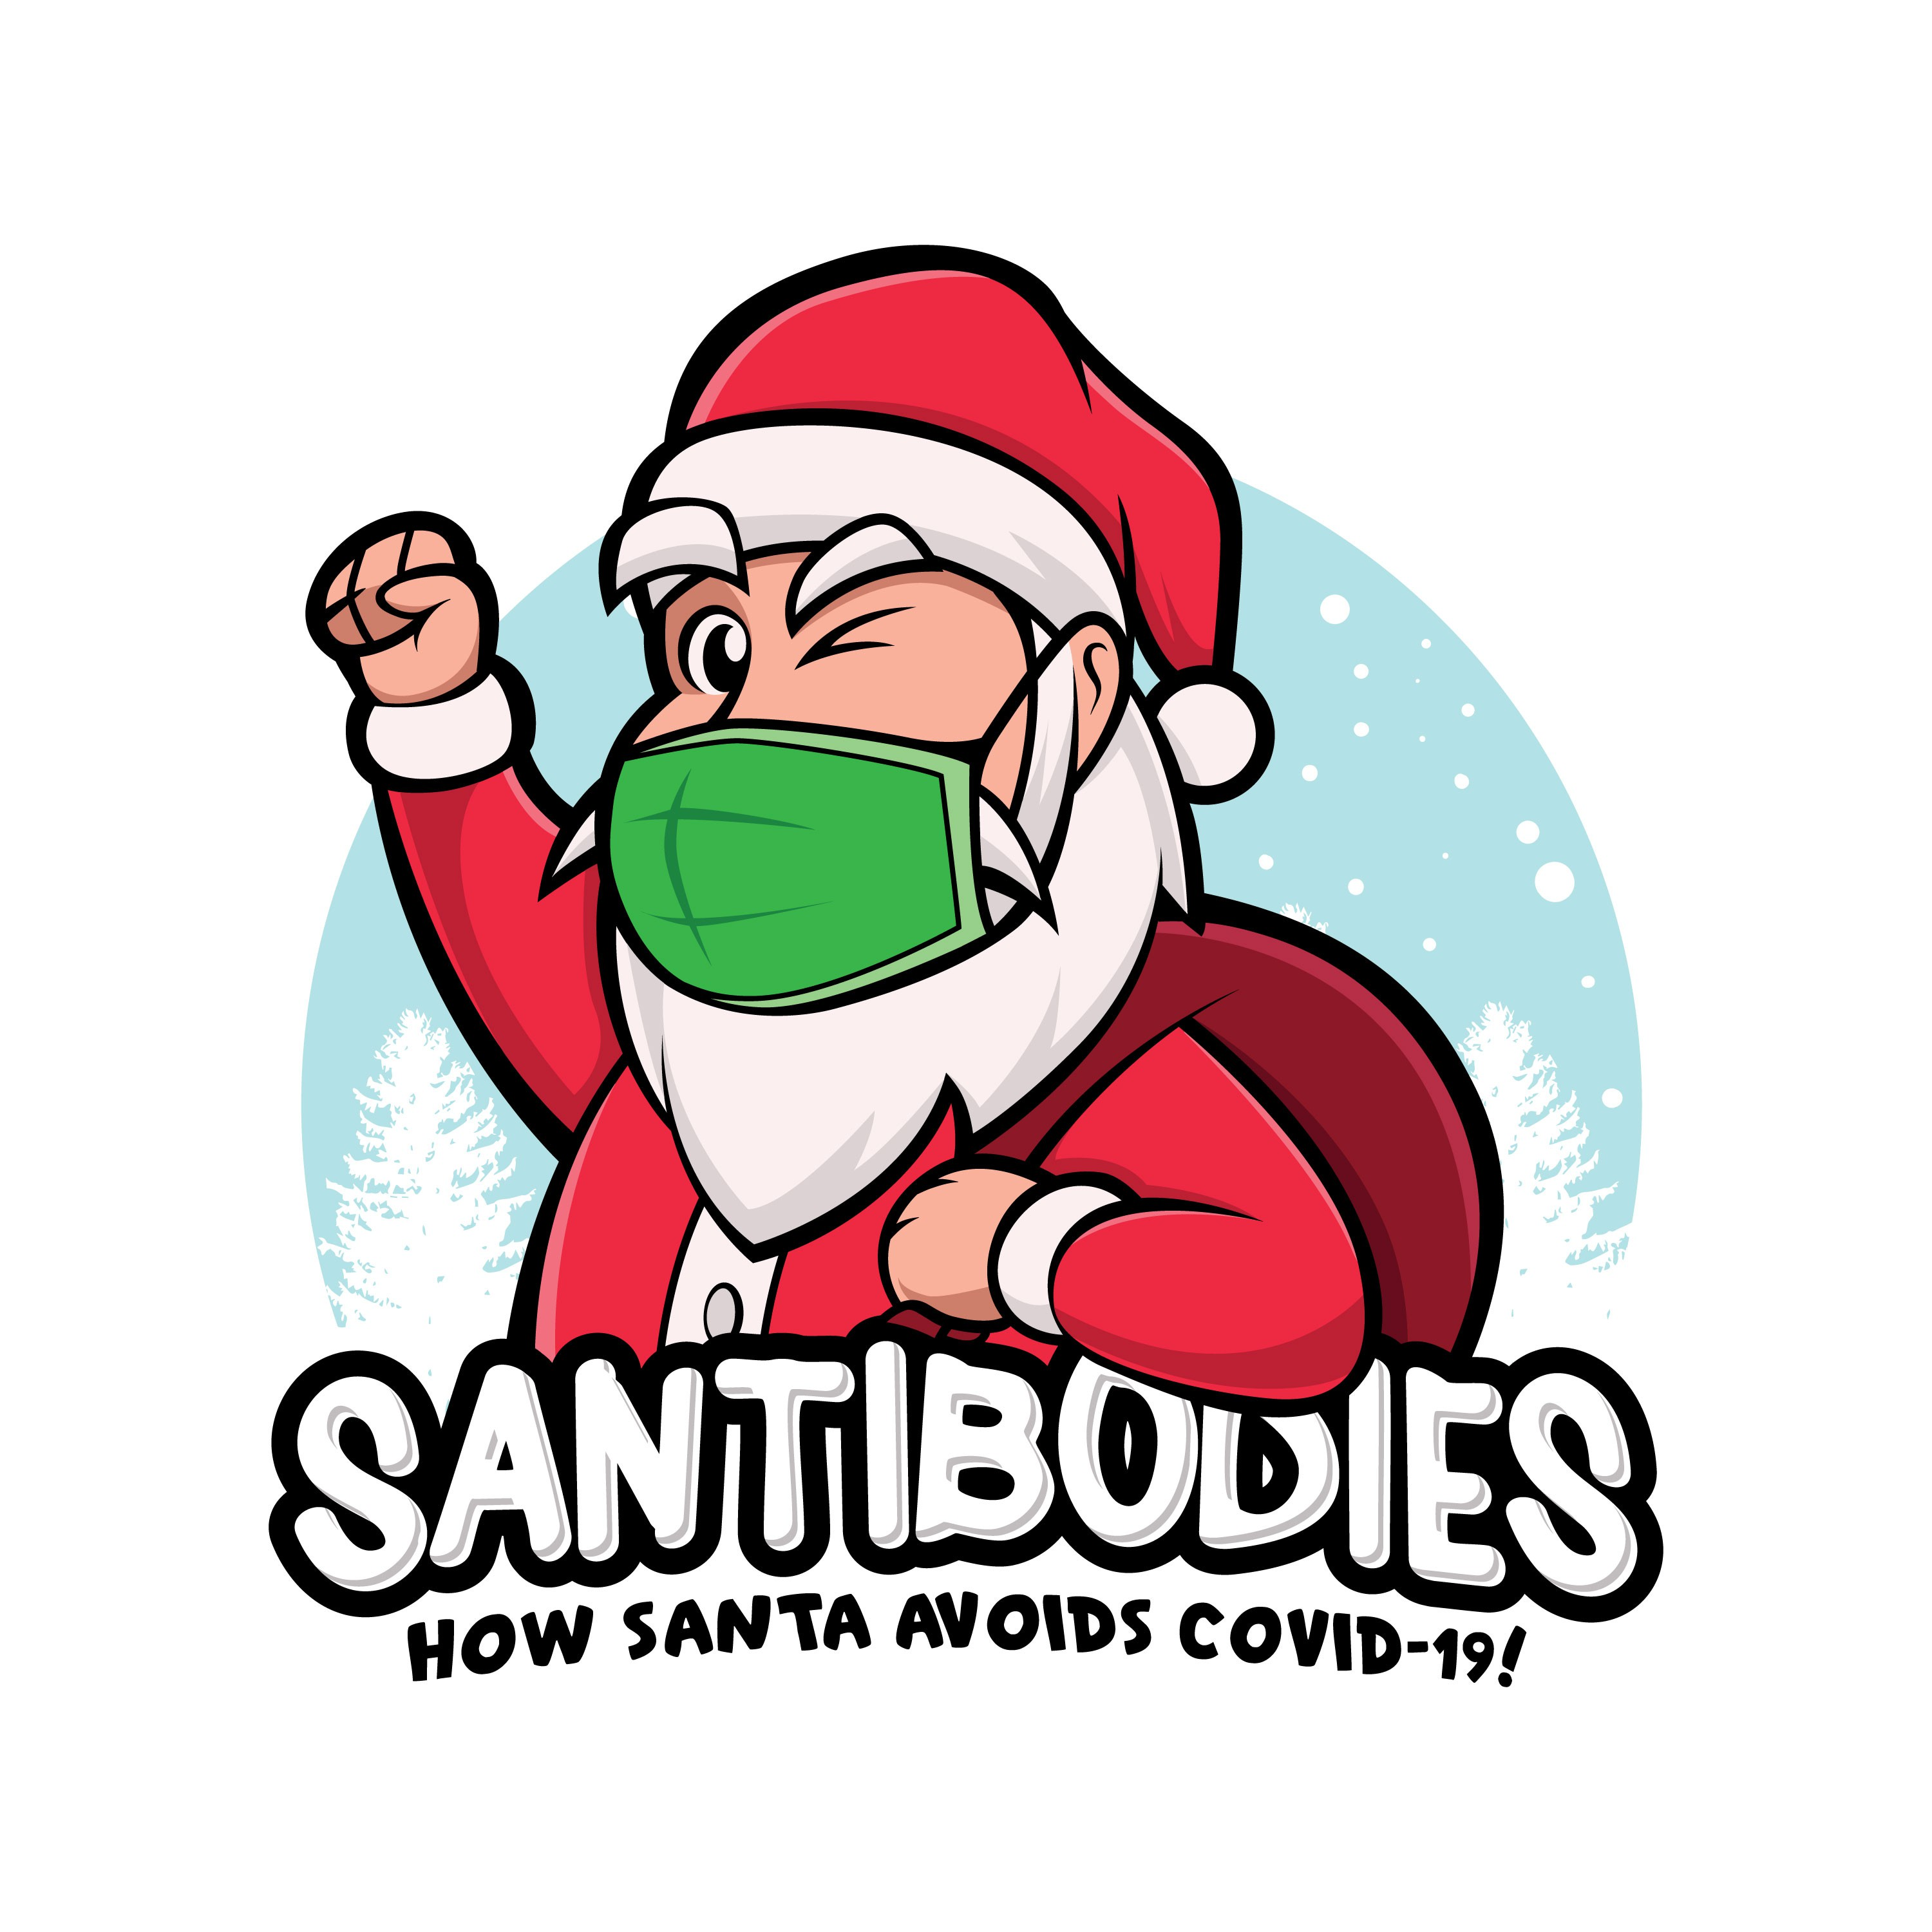 Santa wearing a Covid-19 mask to promote mask compliance